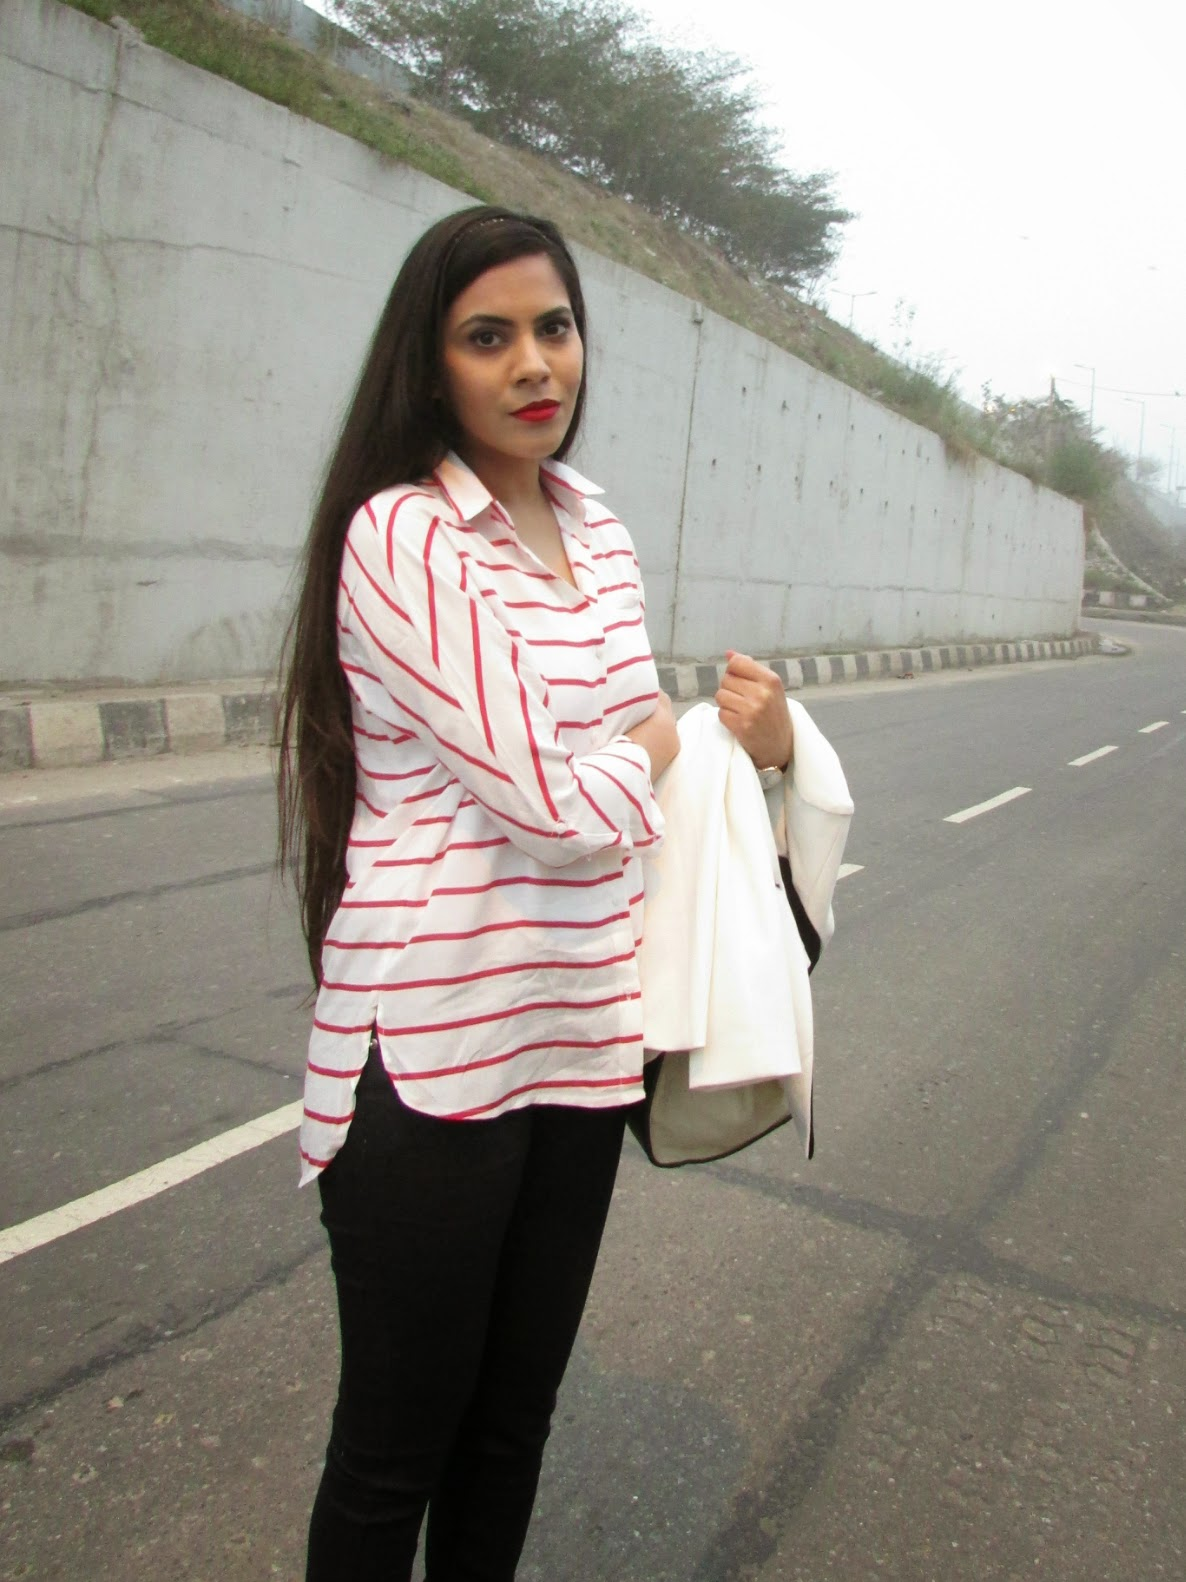 Slouchy Striped Button Down Shirt,strips, loose shirt, strip shirt online, red white strip shirt, oasap, winter ootd, indianfashion bloggger, indian beauty blogger, how to style strips, how to style loose shirts, statement necklace, cheap statement necklace, silver necklace , oasap, oasap review, coins necklace, cheap  coins necklace online, Antique Copper Coin Bib Necklace, fashion,winter coat, tweed coat, oasap. fashion, warm winter coat, cheap overcoat, warm coat on sale, gray coat, Oversized Lapels Tweed Coat, winter essentials, winter, oasap sale, bags , bags top , fun prints top , fun printed top , summer printed top , spring printed top , printed top for summers , printed top for spring ,vintage , Floral , vintage shirt , bracelet , pearls , braid , elegant , chic,Statement necklace, necklace, statement necklaces, big necklace, heavy necklaces , gold necklace, silver necklace, silver statement necklace, gold statement necklace, studded statement necklace , studded necklace, stone studded necklace, stone necklace, stove studded statement necklace, stone statement necklace, stone studded gold statement necklace, stone studded silver statement necklace, black stone necklace, black stone studded statement necklace, black stone necklace, black stone statement necklace, neon statement necklace, neon stone statement necklace, black and silver necklace, black and gold necklace, blank and silver statement necklace, black and gold statement necklace, silver jewellery, gold jewellery, stove jewellery, stone studded jewellery, imitation jewellery, artificial jewellery, junk jewellery, cheap jewellery ,oasap Statement necklace, oasap necklace, oasap statement necklaces,oasap big necklace, oasap heavy necklaces , oasap gold necklace, oasap silver necklace, oasap silver statement necklace,oasap gold statement necklace, oasap studded statement necklace , oasap studded necklace, oasap stone studded necklace, oasap stone necklace, oasap stove studded statement necklace, oasap stone statement necklace, oasap stone studded gold statement necklace, oasap stone studded silver statement necklace, oasap black stone necklace, oasap black stone studded statement necklace, oasap black stone necklace, oasap black stone statement necklace, oasap neon statement necklace, oasap neon stone statement necklace, oasap black and silver necklace, oasap black and gold necklace, oasap black  and silver statement necklace, oasap black and gold statement necklace, silver jewellery, oasap gold jewellery, oasap stove jewellery, oasap stone studded jewellery, oasap imitation jewellery, oasap artificial jewellery, oasap junk jewellery, oasap cheap jewellery ,Cheap Statement necklace, Cheap necklace, Cheap statement necklaces,Cheap big necklace, Cheap heavy necklaces , Cheap gold necklace, Cheap silver necklace, Cheap silver statement necklace,Cheap gold statement necklace, Cheap studded statement necklace , Cheap studded necklace, Cheap stone studded necklace, Cheap stone necklace, Cheap stove studded statement necklace, Cheap stone statement necklace, Cheap stone studded gold statement necklace, Cheap stone studded silver statement necklace, Cheap black stone necklace, Cheap black stone studded statement necklace, Cheap black stone necklace, Cheap black stone statement necklace, Cheap neon statement necklace, Cheap neon stone statement necklace, Cheap black and silver necklace, Cheap black and gold necklace, Cheap black  and silver statement necklace, Cheap black and gold statement necklace, silver jewellery, Cheap gold jewellery, Cheap stove jewellery, Cheap stone studded jewellery, Cheap imitation jewellery, Cheap artificial jewellery, Cheap junk jewellery, Cheap cheap jewellery , Black pullover, black and grey pullover, black and white pullover, back cutout, back cutout pullover, back cutout sweater, back cutout jacket, back cutout top, back cutout tee, back cutout tee shirt, back cutout shirt, back cutout dress, back cutout trend, back cutout summer dress, back cutout spring dress, back cutout winter dress, High low pullover, High low sweater, High low jacket, High low top, High low tee, High low tee shirt, High low shirt, High low dress, High low trend, High low summer dress, High low spring dress, High low winter dress, oasap Black pullover, oasap black and grey pullover, oasap black and white pullover, oasap back cutout, oasap back cutout pullover, oasap back cutout sweater, oasap back cutout jacket, oasap back cutout top, oasap back cutout tee, oasap back cutout tee shirt, oasap back cutout shirt, oasap back cutout dress, oasap back cutout trend, oasap back cutout summer dress, oasap back cutout spring dress, oasap back cutout winter dress, oasap High low pullover, oasap High low sweater, oasap High low jacket, oasap High low top, oasap High low tee, oasap High low tee shirt, oasap High low shirt, oasap High low dress, oasap High low trend, oasap High low summer dress, oasap High low spring dress, oasap High low winter dress, Cropped, cropped tee,cropped tee shirt , cropped shirt, cropped sweater, cropped pullover, cropped cardigan, cropped top, cropped tank top, Cheap Cropped, cheap cropped tee,cheap cropped tee shirt ,cheap  cropped shirt, cheap cropped sweater, cheap cropped pullover, cheap cropped cardigan,cheap  cropped top, cheap cropped tank top, oasap Cropped, oasap cropped tee, oasap cropped tee shirt , oasap cropped shirt, oasap cropped sweater, oasap cropped pullover, oasap cropped cardigan, oasap cropped top, oasap cropped tank top, Winter Cropped, winter cropped tee, winter cropped tee shirt , winter cropped shirt, winter cropped sweater, winter cropped pullover, winter cropped cardigan, winter cropped top, winter cropped tank top,Leggings, winter leggings, warm leggings, winter warm leggings, fall leggings, fall warm leggings, tights, warm tights, winter tights, winter warm tights, fall tights, fall warm tights, oasap leggings, oasap tights, oasap warm leggings, oasap warm tights, oasap winter warm tights, oasap fall warm tights, woollen tights , woollen leggings, oasap woollen tights, oasap woollen leggings, woollen bottoms, oasap woollen bottoms, oasap woollen pants , woollen pants,  Christmas , Christmas leggings, Christmas tights, oasap Christmas, oasap Christmas clothes, clothes for Christmas , oasap Christmas leggings, oasap Christmas tights, oasap warm Christmas leggings, oasap warm Christmas  tights, oasap snowflake leggings, snowflake leggings, snowflake tights, oasap rain deer tights, oasap rain deer leggings, ugly Christmas sweater, Christmas tree, Christmas clothes, Santa clause,Wishlist, clothes wishlist, oasap wishlist, oasap, oasap.com, oasap.com wishlist, autumn wishlist,autumn oasap wishlist, autumn clothes wishlist, autumn shoes wishlist, autumn bags wishlist, autumn boots wishlist, autumn pullovers wishlist, autumn cardigans wishlist, autymn coats wishlist, persunmall clothes wishlist, oasap bags wishlist, oasap bags wishlist, oasap boots wishlist, oasap pullover wishlist, oasap cardigans wishlist, oasap autum clothes wishlist, winter clothes, wibter clothes wishlist, winter wishlist, wibter pullover wishlist, winter bags wishlist, winter boots wishlist, winter cardigans wishlist, winter leggings wishlist, oasap winter clothes, oasap autumn clothes, oasap winter collection, oasap autumn collection,Cheap clothes online,cheap dresses online, cheap jumpsuites online, cheap leggings online, cheap shoes online, cheap wedges online , cheap skirts online, cheap jewellery online, cheap jackets online, cheap jeans online, cheap maxi online, cheap makeup online, cheap cardigans online, cheap accessories online, cheap coats online,cheap brushes online,cheap tops online, chines clothes online, Chinese clothes,Chinese jewellery ,Chinese jewellery online,Chinese heels online,Chinese electronics online,Chinese garments,Chinese garments online,Chinese products,Chinese products online,Chinese accessories online,Chinese inline clothing shop,Chinese online shop,Chinese online shoes shop,Chinese online jewellery shop,Chinese cheap clothes online,Chinese  clothes shop online, korean online shop,korean garments,korean makeup,korean makeup shop,korean makeup online,korean online clothes,korean online shop,korean clothes shop online,korean dresses online,korean dresses online,cheap Chinese clothes,cheap korean clothes,cheap Chinese makeup,cheap korean makeup,cheap korean shopping ,cheap Chinese shopping,cheap Chinese online shopping,cheap korean online shopping,cheap Chinese shopping website,cheap korean shopping website, cheap online shopping,online shopping,how to shop online ,how to shop clothes online,how to shop shoes online,how to shop jewellery online,how to shop mens clothes online, mens shopping online,boys shopping online,boys jewellery online,mens online shopping,mens online shopping website,best Chinese shopping website, Chinese online shopping website for men,best online shopping website for women,best korean online shopping,best korean online shopping website,korean fashion,korean fashion for women,korean fashion for men,korean fashion for girls,korean fashion for boys,best chinese online shopping,best chinese shopping website,best chinese online shopping website,wholesale chinese shopping website,wholesale shopping website,chinese wholesale shopping online,chinese wholesale shopping, chinese online shopping on wholesale prices, clothes on wholesale prices,cholthes on wholesake prices,clothes online on wholesales prices,online shopping, online clothes shopping, online jewelry shopping,how to shop online, how to shop clothes online, how to shop earrings online, how to shop,skirts online, dresses online,jeans online, shorts online, tops online, blouses online,shop tops online, shop blouses online, shop skirts online, shop dresses online, shop botoms online, shop summer dresses online, shop bracelets online, shop earrings online, shop necklace online, shop rings online, shop highy low skirts online, shop sexy dresses onle, men's clothes online, men's shirts online,men's jeans online, mens.s jackets online, mens sweaters online, mens clothes, winter coats online, sweaters online, cardigens online,beauty , fashion,beauty and fashion,beauty blog, fashion blog , indian beauty blog,indian fashion blog, beauty and fashion blog, indian beauty and fashion blog, indian bloggers, indian beauty bloggers, indian fashion bloggers,indian bloggers online, top 10 indian bloggers, top indian bloggers,top 10 fashion bloggers, indian bloggers on blogspot,home remedies, how to,oasap online shopping,oasap online shopping review,oasap.com review,oasap online clothing store,oasap online chinese store,oasap online shopping,oasap site review,oasap.com site review, oasap Chines fashion, persunmall , oasap.com, oasap clothing, oasap dresses, oasap shoes, oasap accessories,oasap men cloths ,oasap makeup, oasap helth products,oasap Chinese online shopping, oasap Chinese store, oasap online chinese shopping, oasap lchinese shopping online,oasap, oasap dresses, oasap clothes, oasap garments, oasap clothes, oasap skirts, oasap pants, oasap tops, oasap cardigans, oasap leggings, oasap fashion , oasap clothes fashion, oasap footwear, oasap fashion footwear, oasap jewellery, oasap fashion jewellery, oasap rings, oasap necklace, oasap bracelets, oasap earings,Autumn, fashion, oasap, wishlist,Winter,fall, fall abd winter, winter clothes , fall clothes, fall and winter clothes, fall jacket, winter jacket, fall and winter jacket, fall blazer, winter blazer, fall and winter blazer, fall coat , winter coat, falland winter coat, fall coverup, winter coverup, fall and winter coverup, outerwear, coat , jacket, blazer, fall outerwear, winter outerwear, fall and winter outerwear, woolen clothes, wollen coat, woolen blazer, woolen jacket, woolen outerwear, warm outerwear, warm jacket, warm coat, warm blazer, warm sweater, coat , white coat, white blazer, white coat, white woolen blazer, white coverup, white woolens,oasap online shopping review,oasap.com review,oasap online clothing store,oasap online chinese store,oasap online shopping,oasap site review,oasap.com site review, oasap Chines fashion, oasap , oasap.com, oasap clothing, oasap dresses, oasap shoes, oasap accessories,oasap men cloths ,oasap makeup, oasap helth products,oasap Chinese online shopping, oasap Chinese store, oasap online chinese shopping, oasap chinese shopping online,oasap, oasap dresses, oasap clothes, oasap garments, oasap clothes, oasap skirts, persunmall pants, oasap tops, oasap cardigans, oasap leggings, oasap fashion , oasap clothes fashion, oasap footwear, oasap fashion footwear, oasap jewellery, oasap fashion jewellery, oasap rings, oasap necklace, oasap bracelets, oasap earings,latest fashion trends online, online shopping, online shopping in india, online shopping in india from america, best online shopping store , best fashion clothing store, best online fashion clothing store, best online jewellery store, best online footwear store, best online store, beat online store for clothes, best online store for footwear, best online store for jewellery, best online store for dresses, worldwide shipping free, free shipping worldwide, online store with free shipping worldwide,best online store with worldwide shipping free,low shipping cost, low shipping cost for shipping to india, low shipping cost for shipping to asia, low shipping cost for shipping to korea,Friendship day , friendship's day, happy friendship's day, friendship day outfit, friendship's day outfit, how to wear floral shorts, floral shorts, styling floral shorts, how to style floral shorts, how to wear shorts, how to style shorts, how to style style denim shorts, how to wear denim shorts,how to wear printed shorts, how to style printed shorts, printed shorts, denim shorts, how to style black shorts, how to wear black shorts, how to wear black shorts with black T-shirts, how to wear black T-shirt, how to style a black T-shirt, how to wear a plain black T-shirt, how to style black T-shirt,how to wear shorts and T-shirt, what to wear with floral shorts, what to wear with black floral shorts,how to wear all black outfit, what to wear on friendship day, what to wear on a date, what to wear on a lunch date, what to wear on lunch, what to wear to a friends house, what to wear on a friends get together, what to wear on friends coffee date , what to wear for coffee,beauty,Pink, pink pullover, pink sweater, pink jumpsuit, pink sweatshirt, neon pink, neon pink sweater, neon pink pullover, neon pink jumpsuit , neon pink cardigan, cardigan , pink cardigan, sweater, jumper, jumpsuit, pink jumper, neon pink jumper, pink jacket, neon pink jacket, winter clothes, oversized coat, oversized winter clothes, oversized pink coat, oversized coat, oversized jacket, oasap pink, oasap pink sweater, oasap pink jacket, oasap pink cardigan, oasap pink coat, oasap pink jumper, oasap neon pink, oasap neon pink jacket, oasap neon pink coat, oasap neon pink sweater, oasap neon pink jumper, oasap neon pink pullover, pink pullover, neon pink pullover,fur,furcoat,furjacket,furblazer,fur pullover,fur cardigan,front open fur coat,front open fur jacket,front open fur blazer,front open fur pullover,front open fur cardigan,real fur, real fur coat,real fur jacket,real fur blazer,real fur pullover,real fur cardigan, soft fur,soft fur coat,soft fur jacket,soft furblazer,soft fur pullover,sof fur cardigan, white fur,white fur coat,white fur jacket,white fur blazer, white fur pullover, white fur cardigan,trench, trench coat, trench coat online, trench coat india, trench coat online India, trench cost price, trench coat price online, trench coat online price, cheap trench coat, cheap trench coat online, cheap trench coat india, cheap trench coat online India, cheap trench coat , Chinese trench coat, Chinese coat, cheap Chinese trench coat, Korean coat, Korean trench coat, British coat, British trench coat, British trench coat online, British trench coat online, New York trench coat, New York trench coat online, cheap new your trench coat, American trench coat, American trench coat online, cheap American trench coat, low price trench coat, low price trench coat online , low price trench coat online india, low price trench coat india, oasap trench, oasap trench coat, oasap trench coat online, oasap trench coat india, oasap trench coat online India, oasap trench cost price,oasap trench coat price online, oasap trench coat online price, oasap cheap trench coat, oasap cheap trench coat online, oasap cheap trench coat india, oasap cheap trench coat online India, oasap cheap trench coat , oasap Chinese trench coat, oasap Chinese coat, oasap cheap Chinese trench coat, oasap Korean coat, oasap Korean trench coat, oasap British coat, oasap British trench coat, oasap British trench coat online, oasap British trench coat online, oasap New York trench coat, oasap New York trench coat online, oasap cheap new your trench coat, oasap American trench coat, oasap American trench coat online, oasap cheap American trench coat, oasap low price trench coat, oasap low price trench coat online , oasap low price trench coat online india, oasap low price trench coat india, how to wear trench coat, how to wear trench, how to style trench coat, how to style coats, how to style long coats, how to style winter coats, how to style winter trench coats, how to style winter long coats, how to style warm coats, how to style beige coat, how to style beige long coat, how to style beige trench coat, how to style beige coat, beige coat, beige long coat, beige long coat, beige frock coat, beige double breasted coat, double breasted coat, how to style frock coat, how to style double breasted coat, how to wear beige trench coat,how to wear beige coat, how to wear beige long coat, how to wear beige frock coat, how to wear beige double button coat, how to wear beige double breat coat, double button coat, what us trench coat, uses of trench coat, what is frock coat, uses of frock coat, what is long coat, uses of long coat, what is double breat coat, uses of double breasted coat, what is bouton up coat, uses of button up coat, what is double button coat, uses of double button coat, velvet leggings, velvet tights, velvet bottoms, embroided velvet leggings, embroided velvet tights, pattern tights, velvet pattern tights, floral tights , floral velvet tights, velvet floral tights, embroided  velvet leggings, pattern leggings , velvet pattern leggings , floral leggings , floral velvet leggings, velvet floral leggings ,oasap velvet leggings, oasap velvet tights, oasap velvet bottoms,oasap embroided velvet leggings,oasap embroided velvet tights, oasap pattern tights, oasap velvet pattern tights, oasap floral tights , oasap floral velvet tights, oasap velvet floral tights, oasap embroided  velvet leggings, oasap pattern leggings , oasap velvet pattern leggings , oasap floral leggings ,oasap floral velvet leggings, oasap velvet floral leggings , free , giveaway , free clothes,Giveaway, giveaways,clothes giveaway, clothes giveaways, shoes giveaways, jewellery giveaway, jewellery giveaways, online clothes giveaway, online shoes giveaway, online jewellery giveaway, , clothes and shoes giveaway , clothes and jewellery giveaway, jewellery and shoes giveaway, online shoes and clothes giveaway,online jewellery and clothes giveaway, free clothes , beauty , fashion,beauty and fashion,beauty blog, fashion blog , indian beauty blog,indian fashion blog, beauty and fashion blog, indian beauty and fashion blog, indian bloggers, indian beauty bloggers, indian fashion bloggers,indian bloggers online, top 10 indian bloggers, top indian bloggers,top 10 fashion bloggers, indian bloggers on blogspot,home remedies, how to